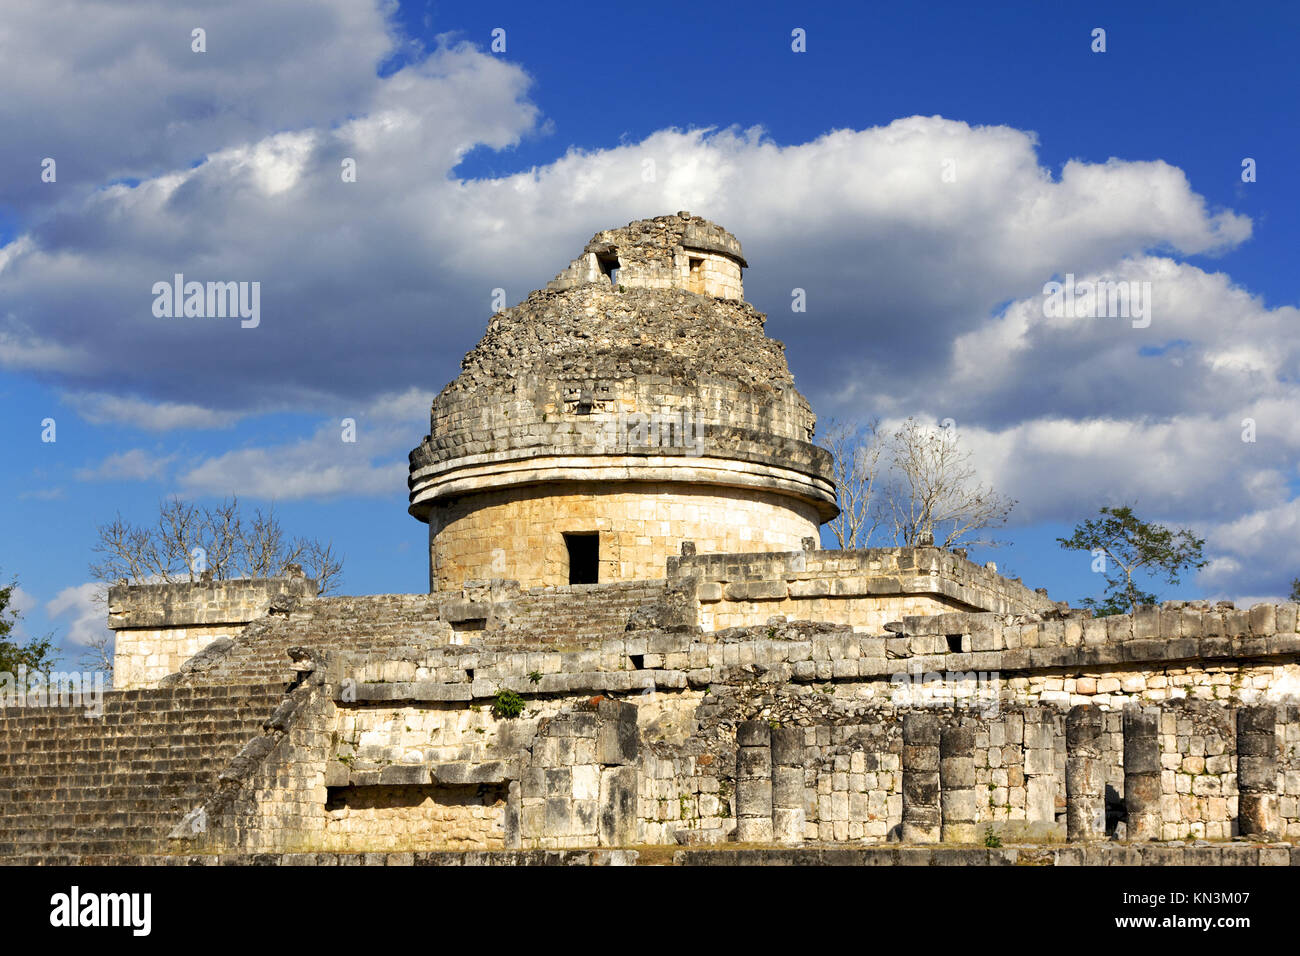 El Caracol (the snail) Mayan observatory ruin at Chichen Itza, Yucatan, Mexico. - Stock Image